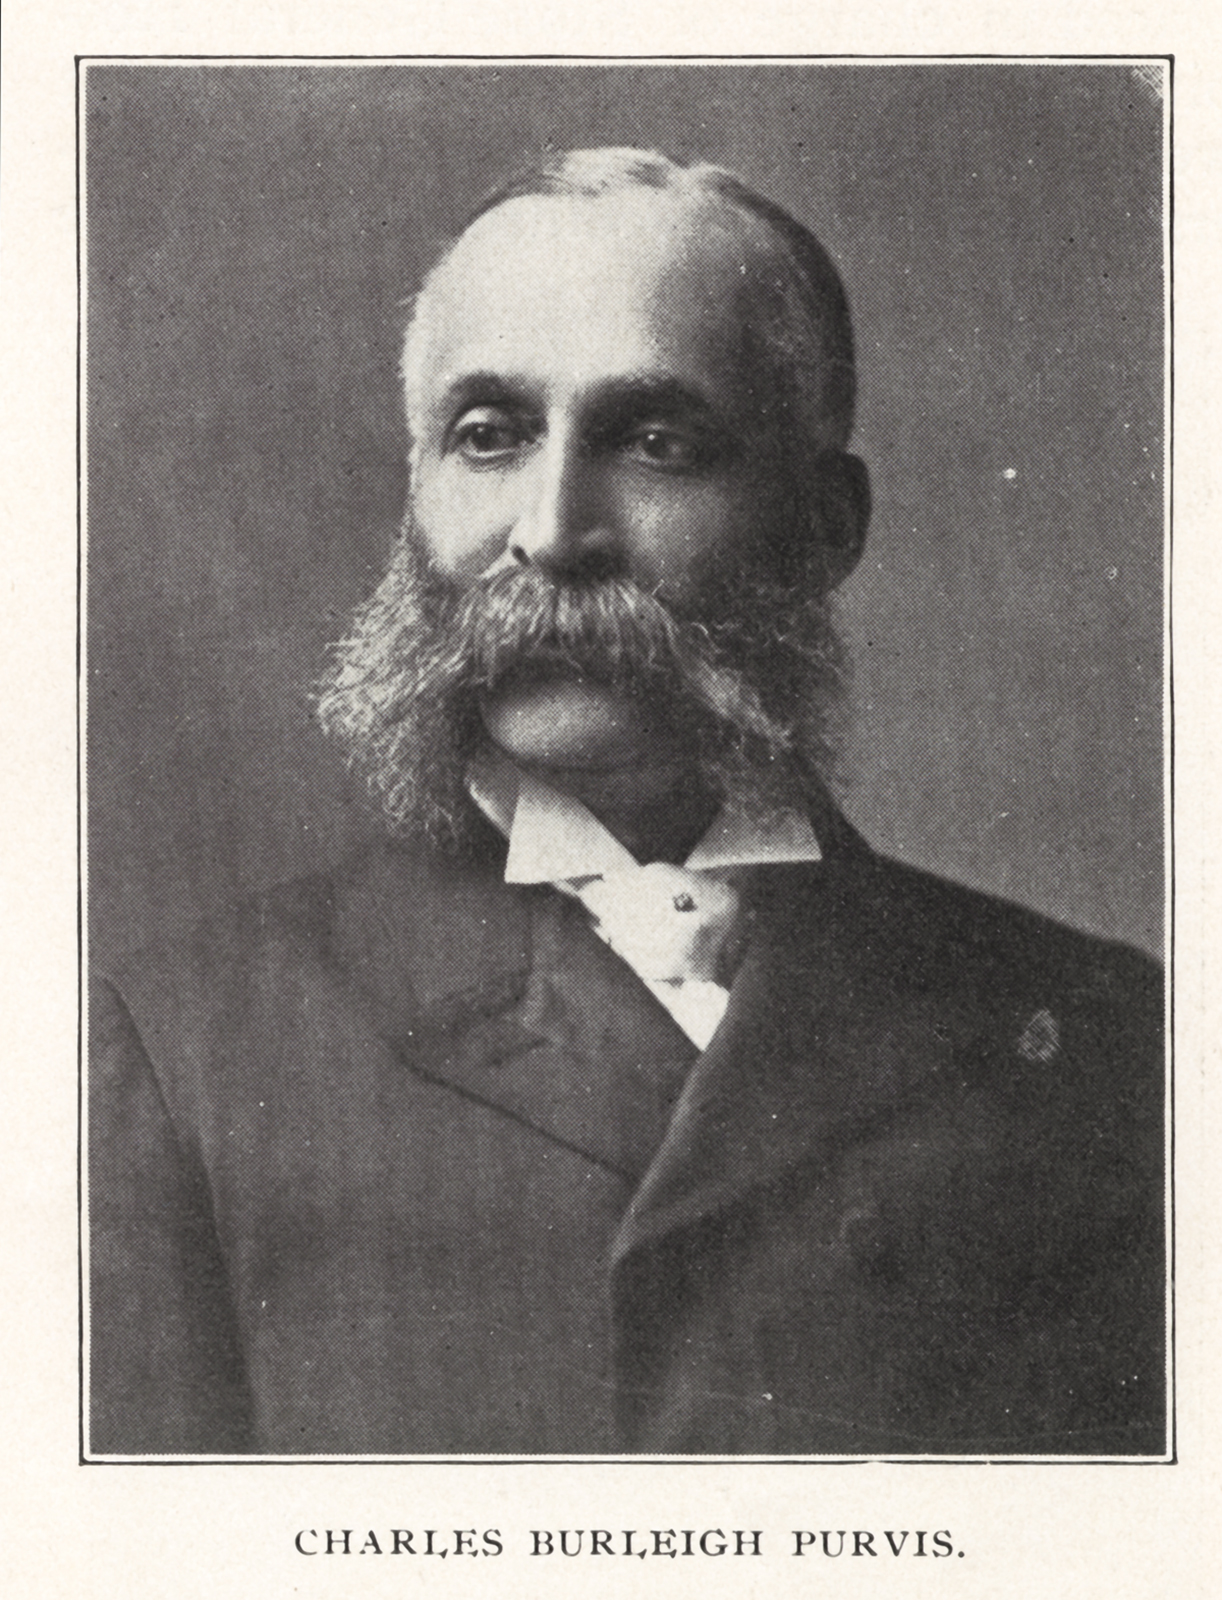 Portrait of Charles Burleigh Purvis, MD, ca. 1900.